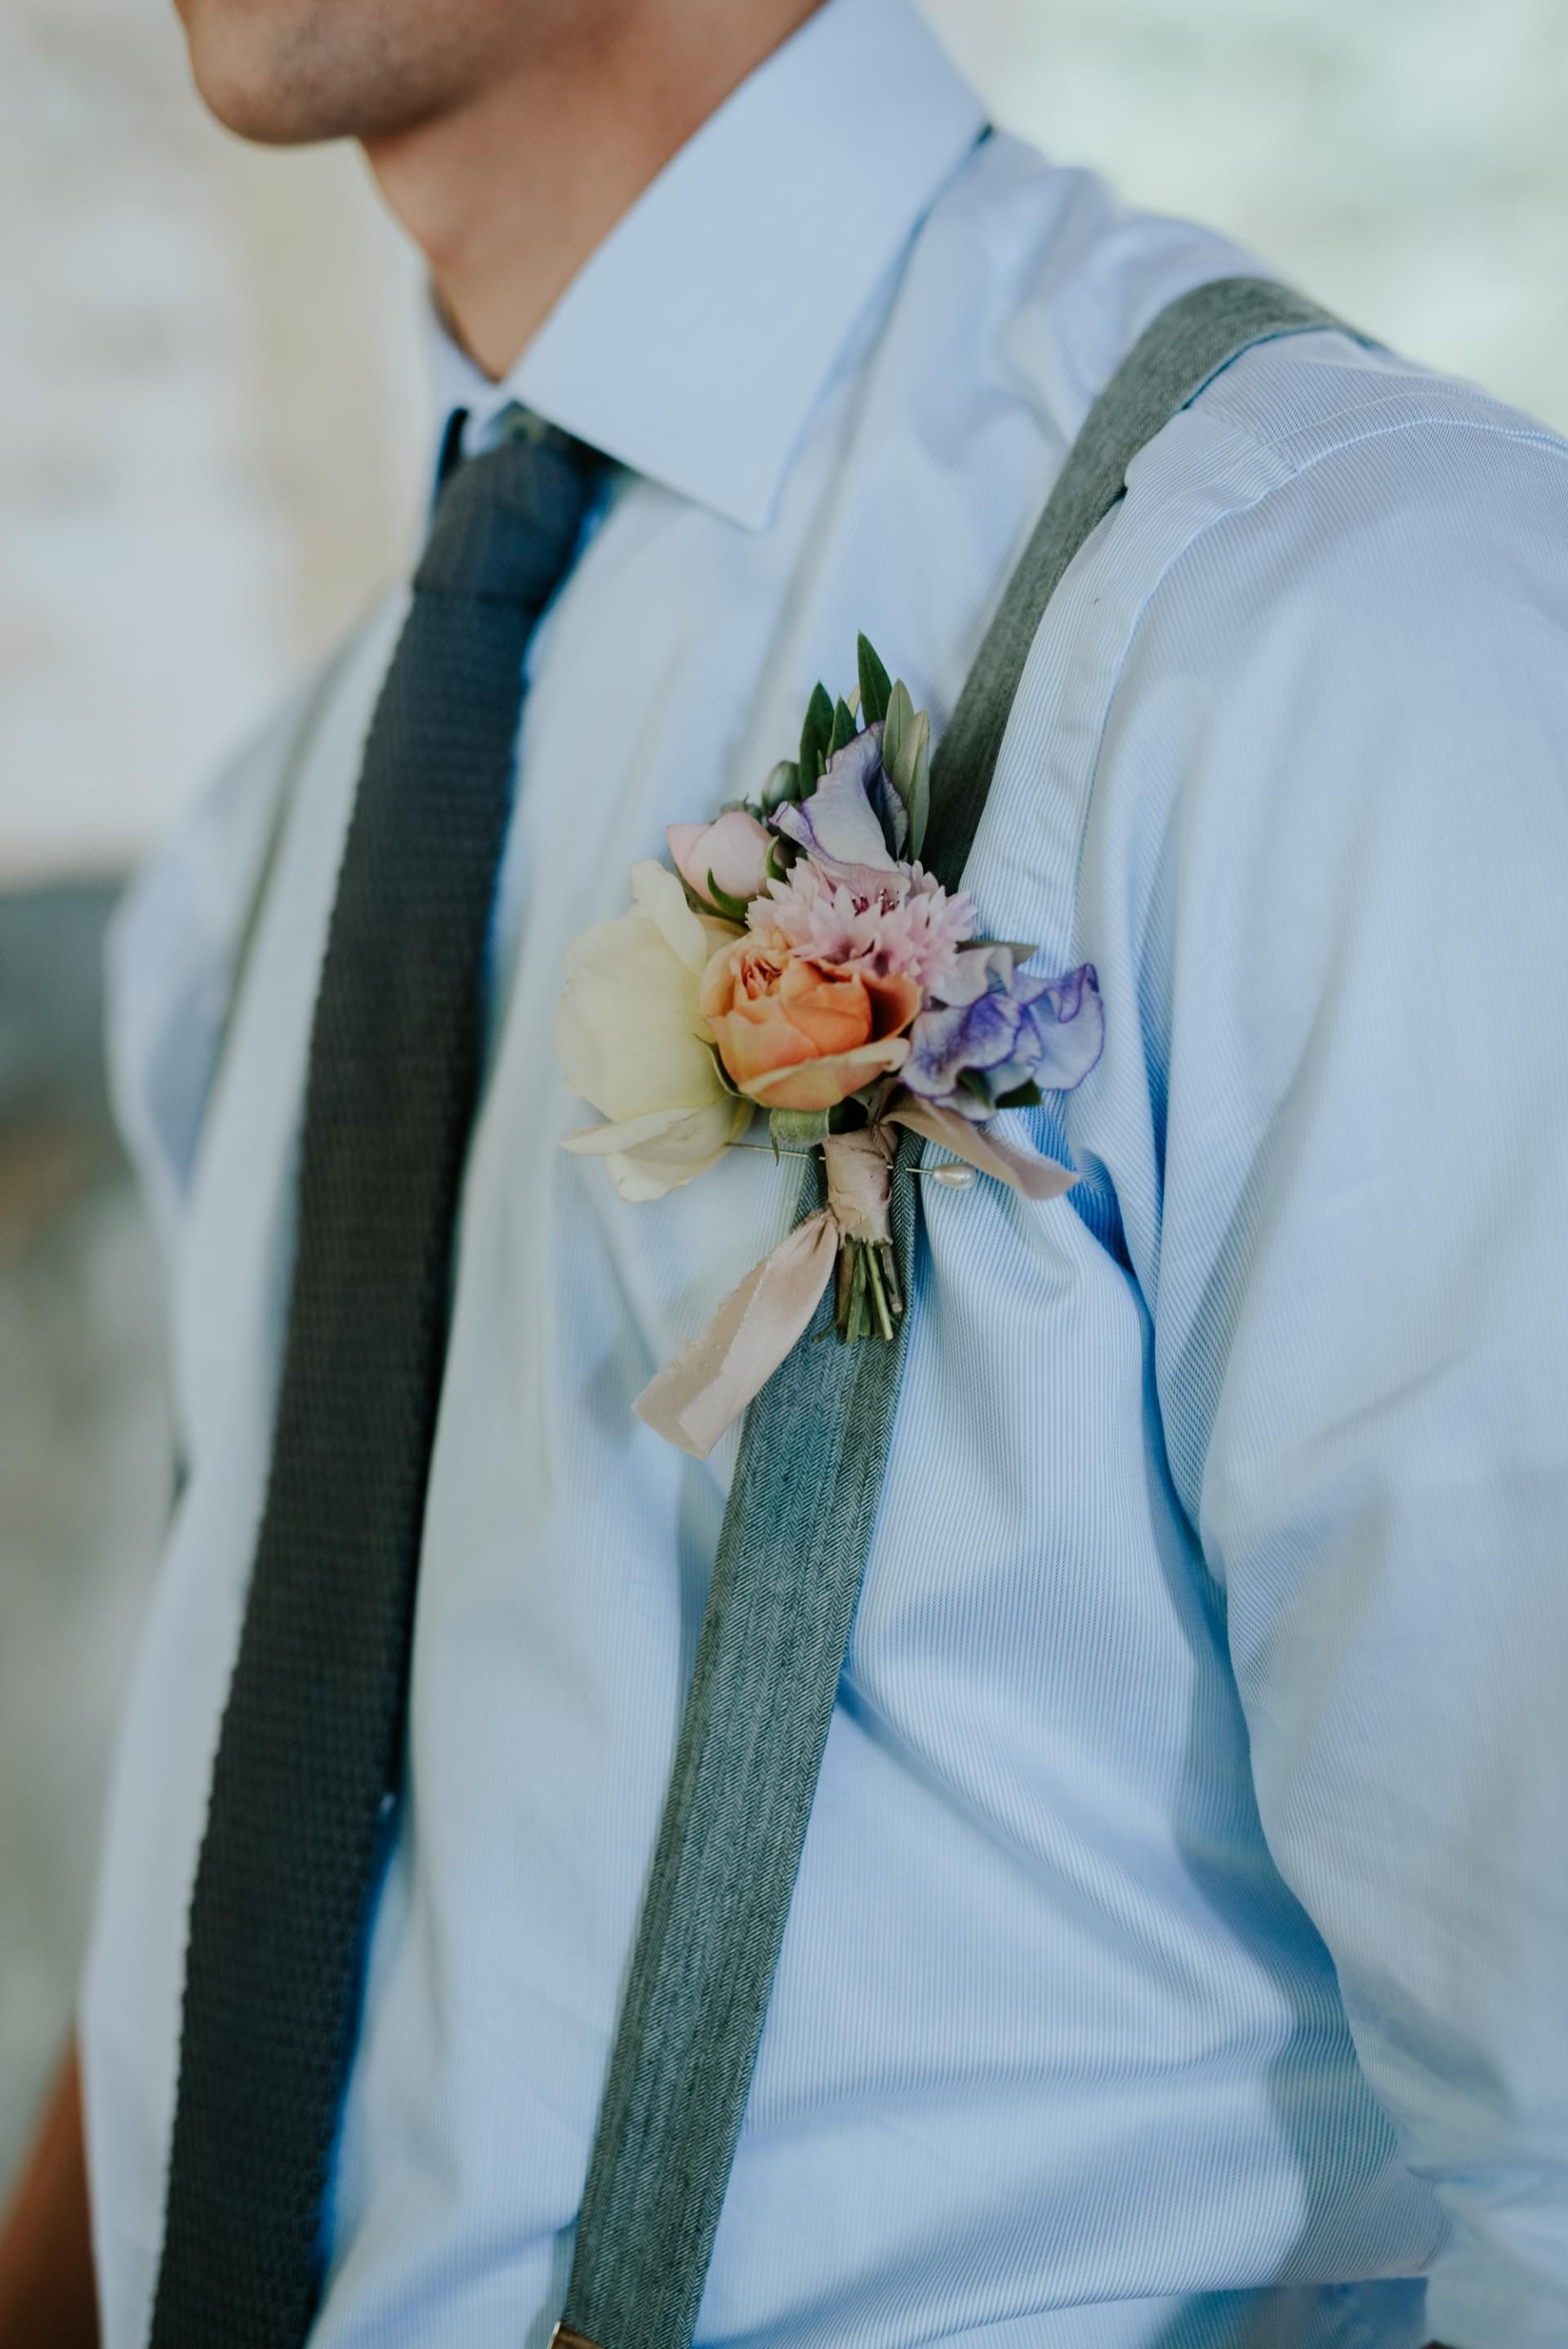 The Smarter Way to Wed | Pinterest | Casual grooms, Groom style and ...